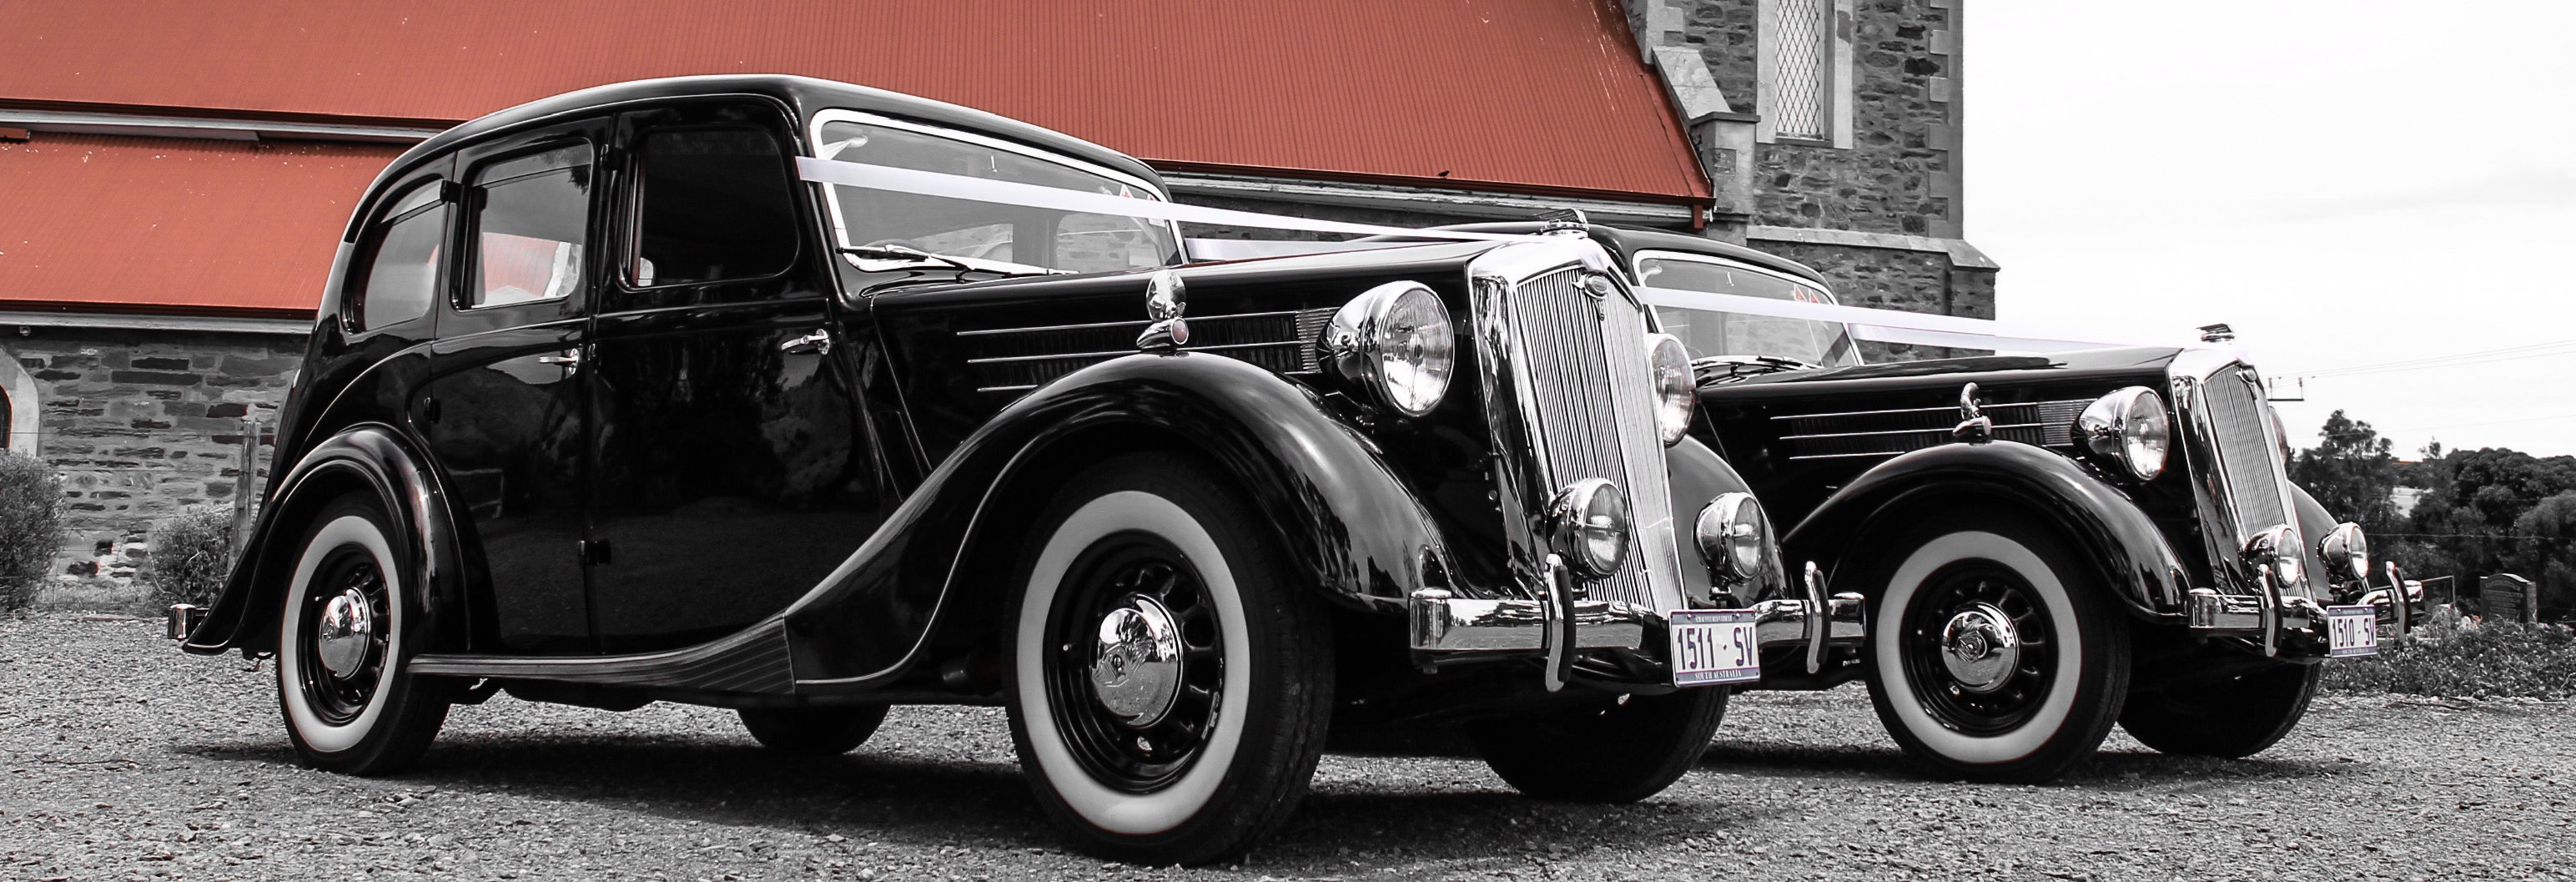 wolseley wedding cars Adelaide front and side low view